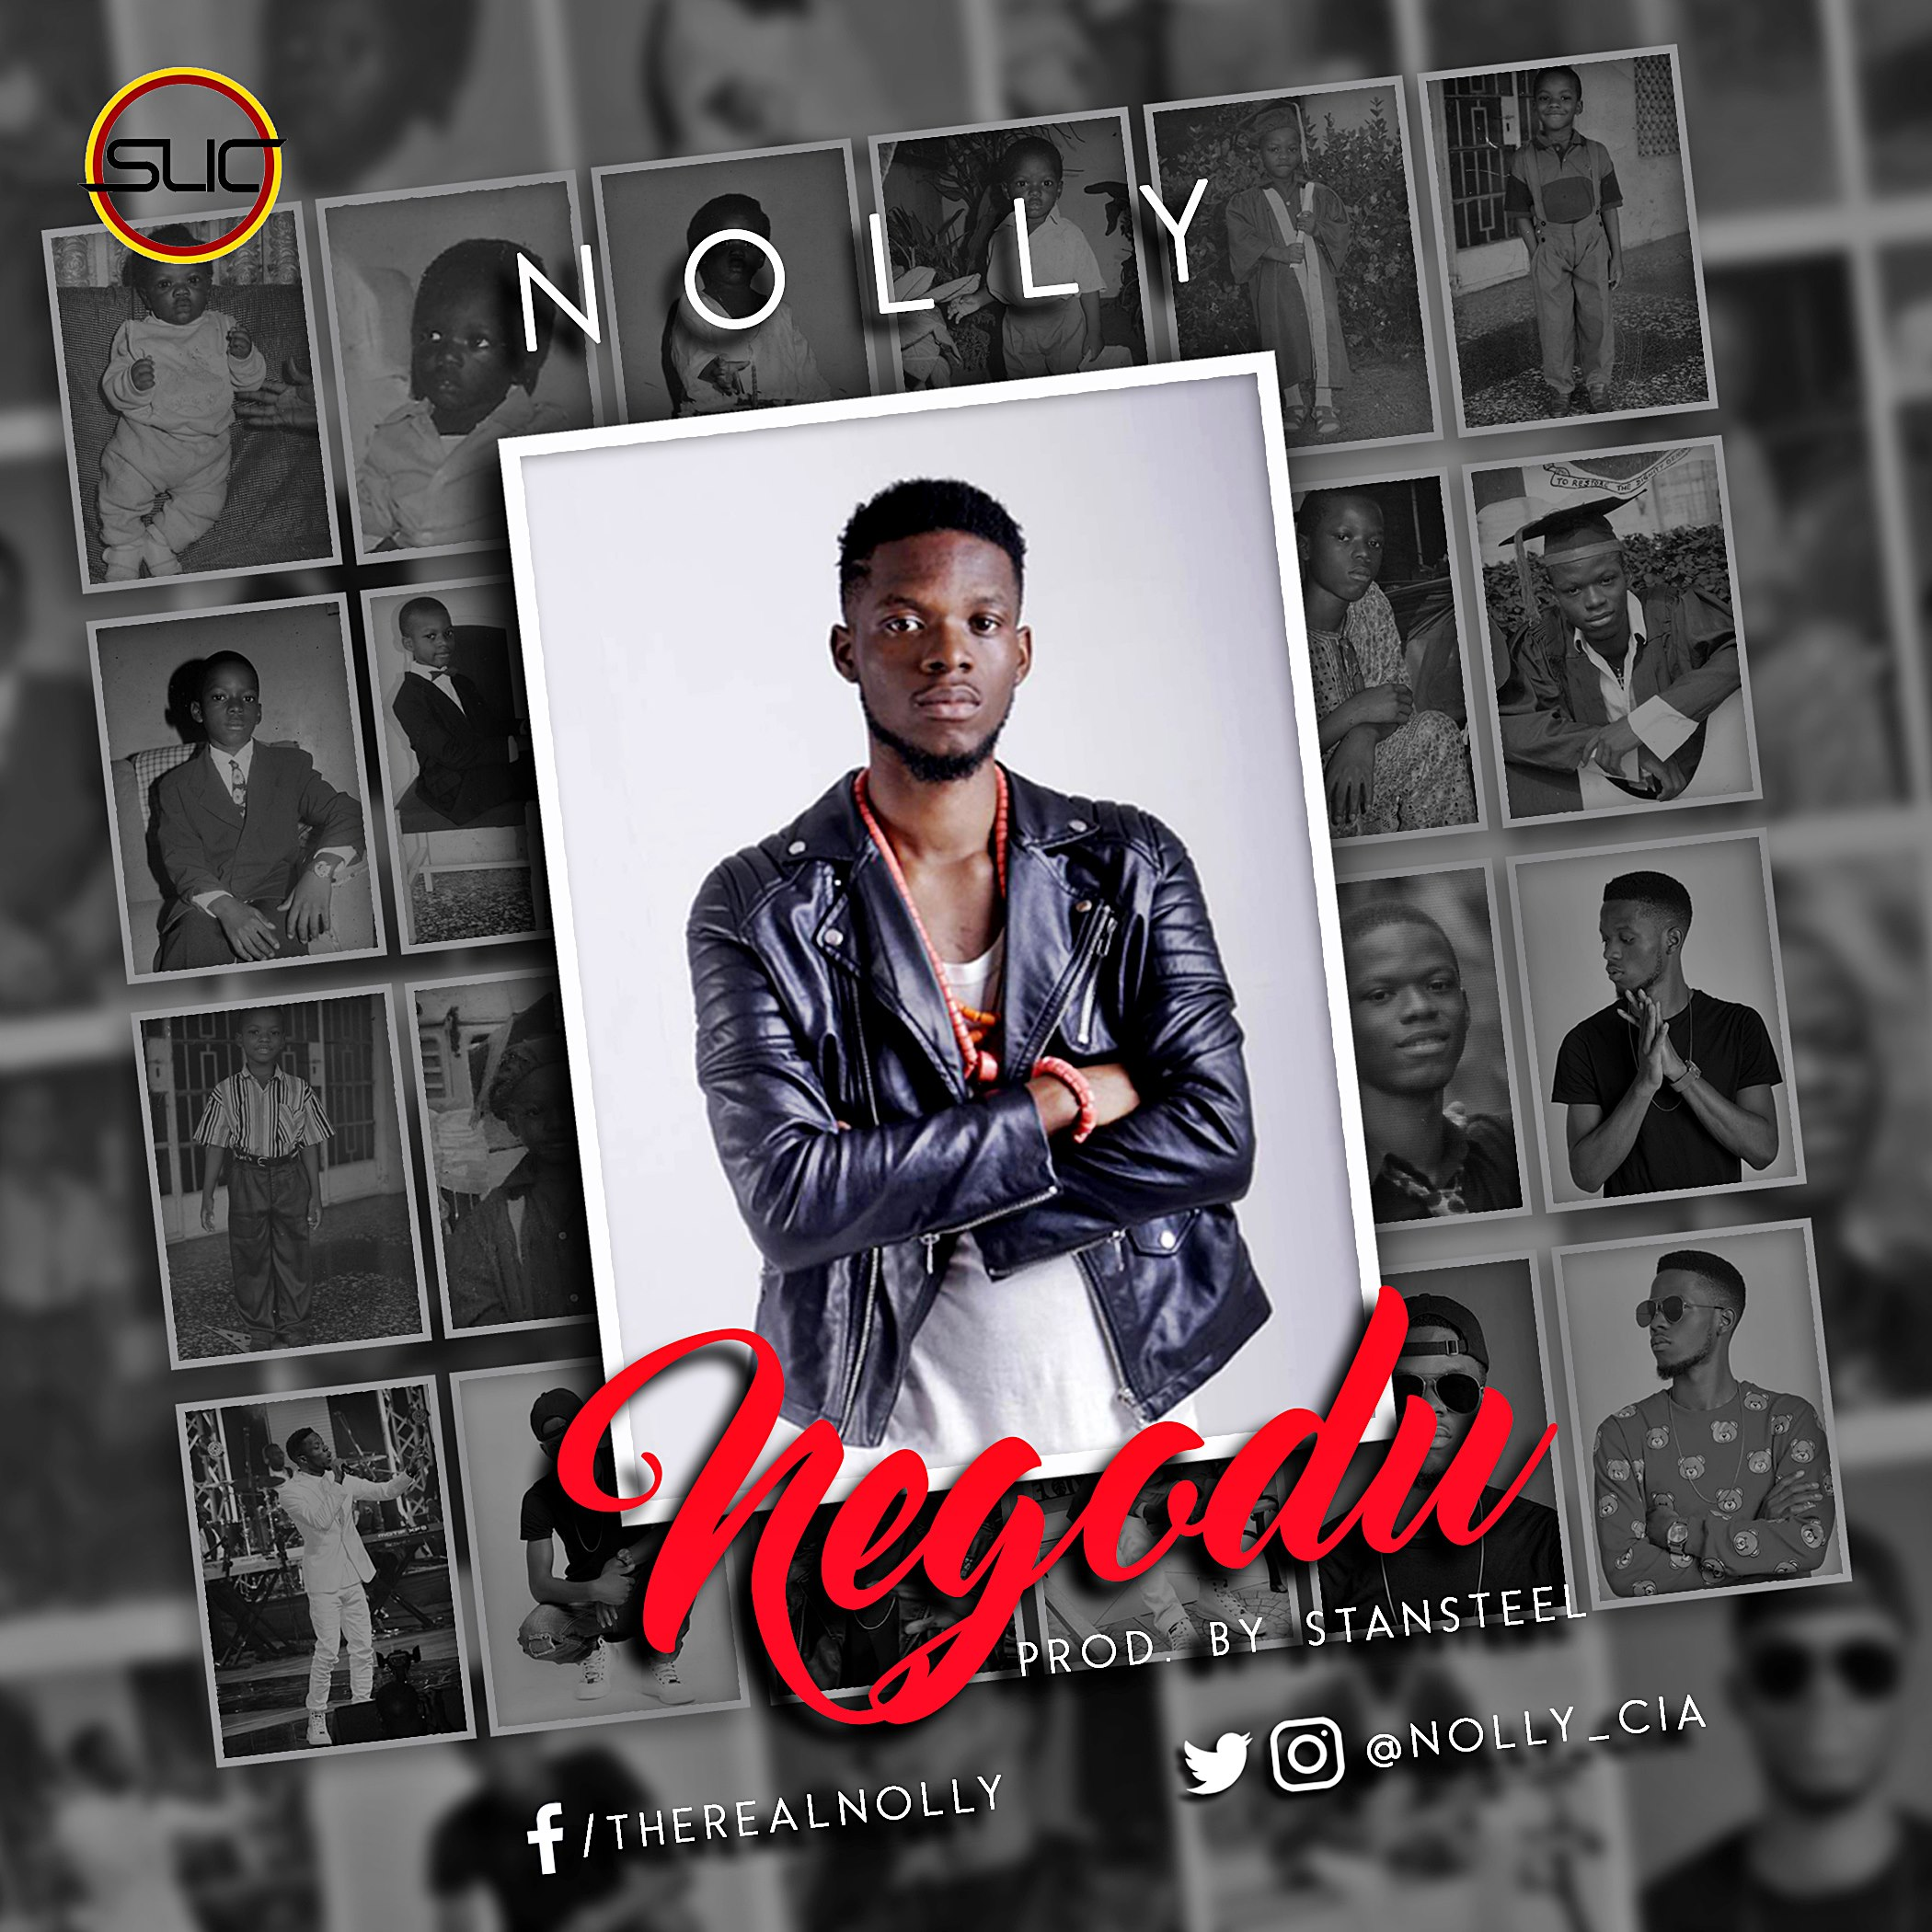 DOWNLOAD Music: Nolly – Negodu (Prod. By Stansteel)